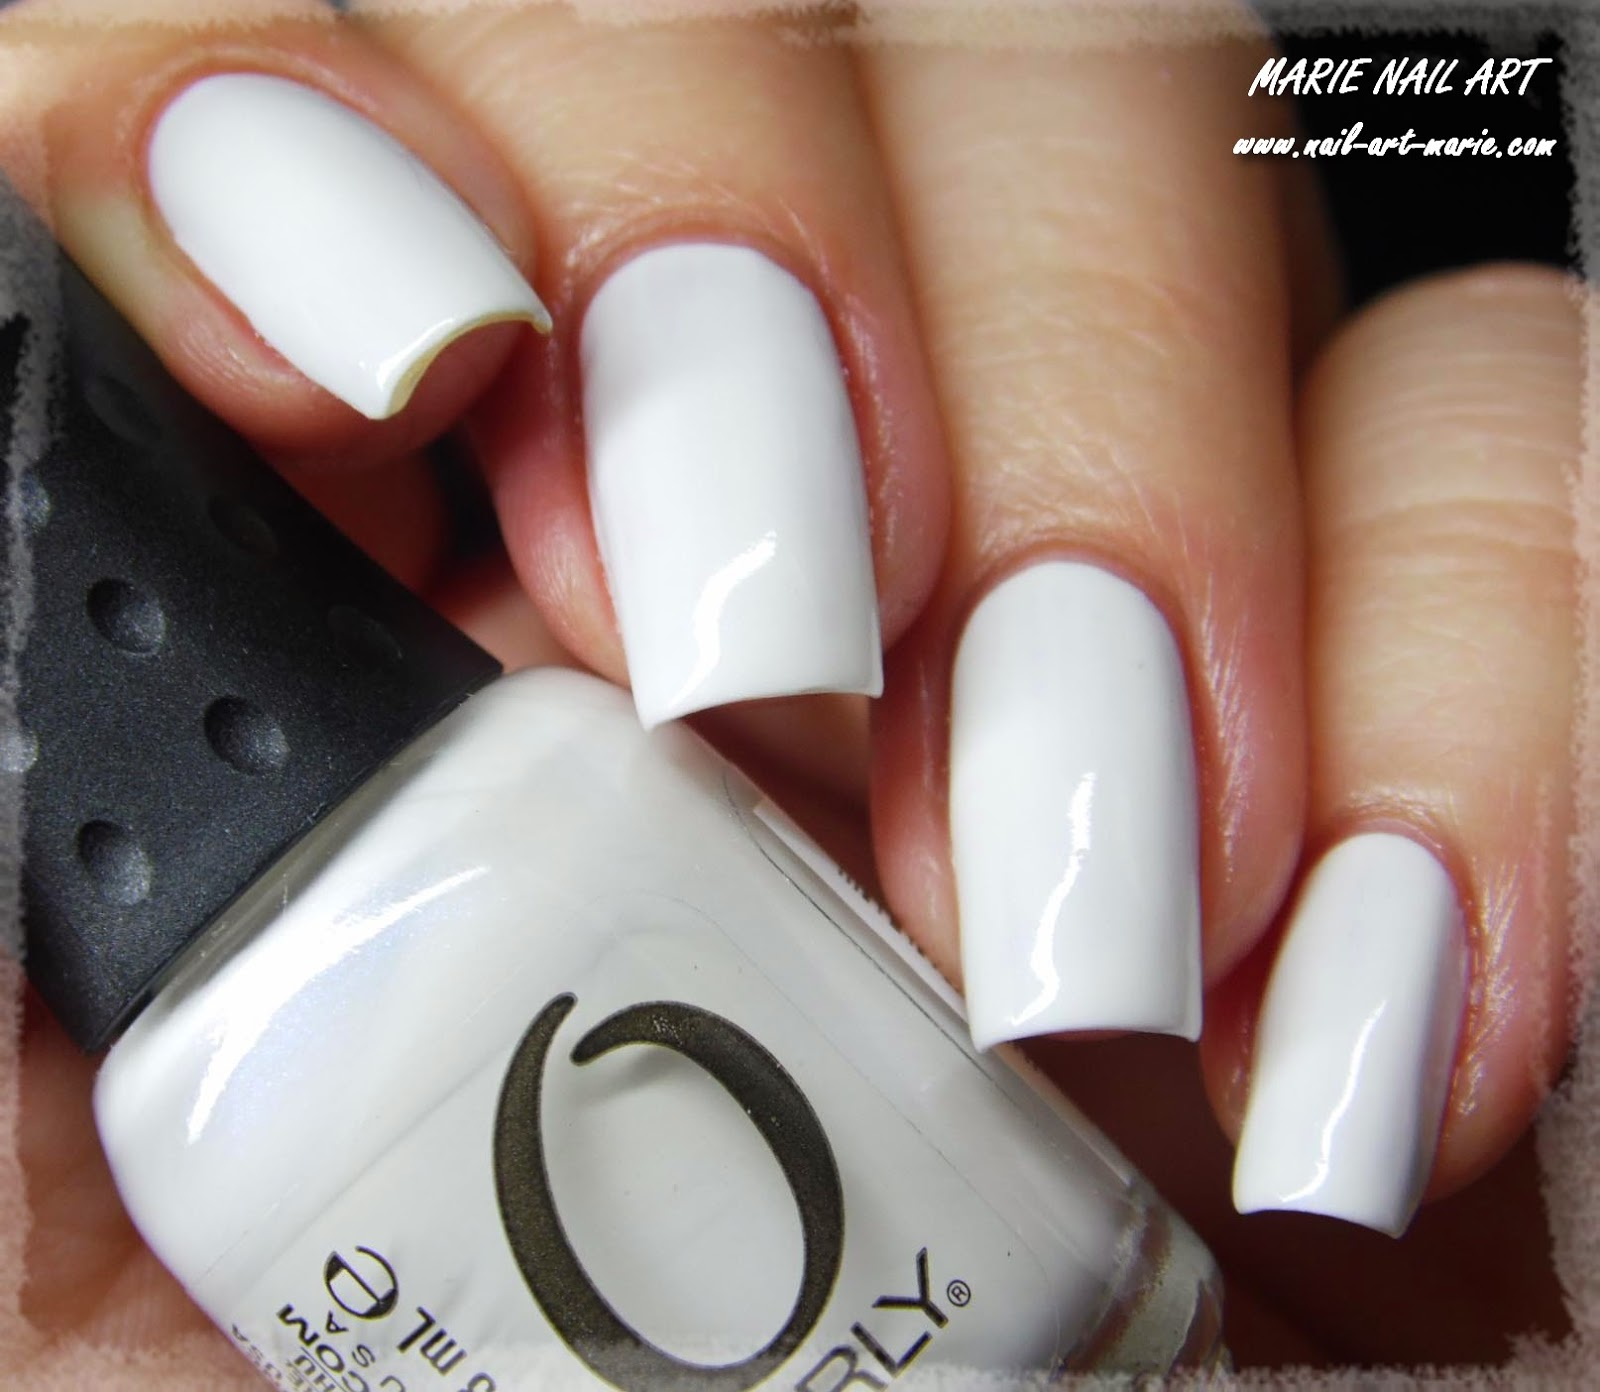 Orly Dayglow6